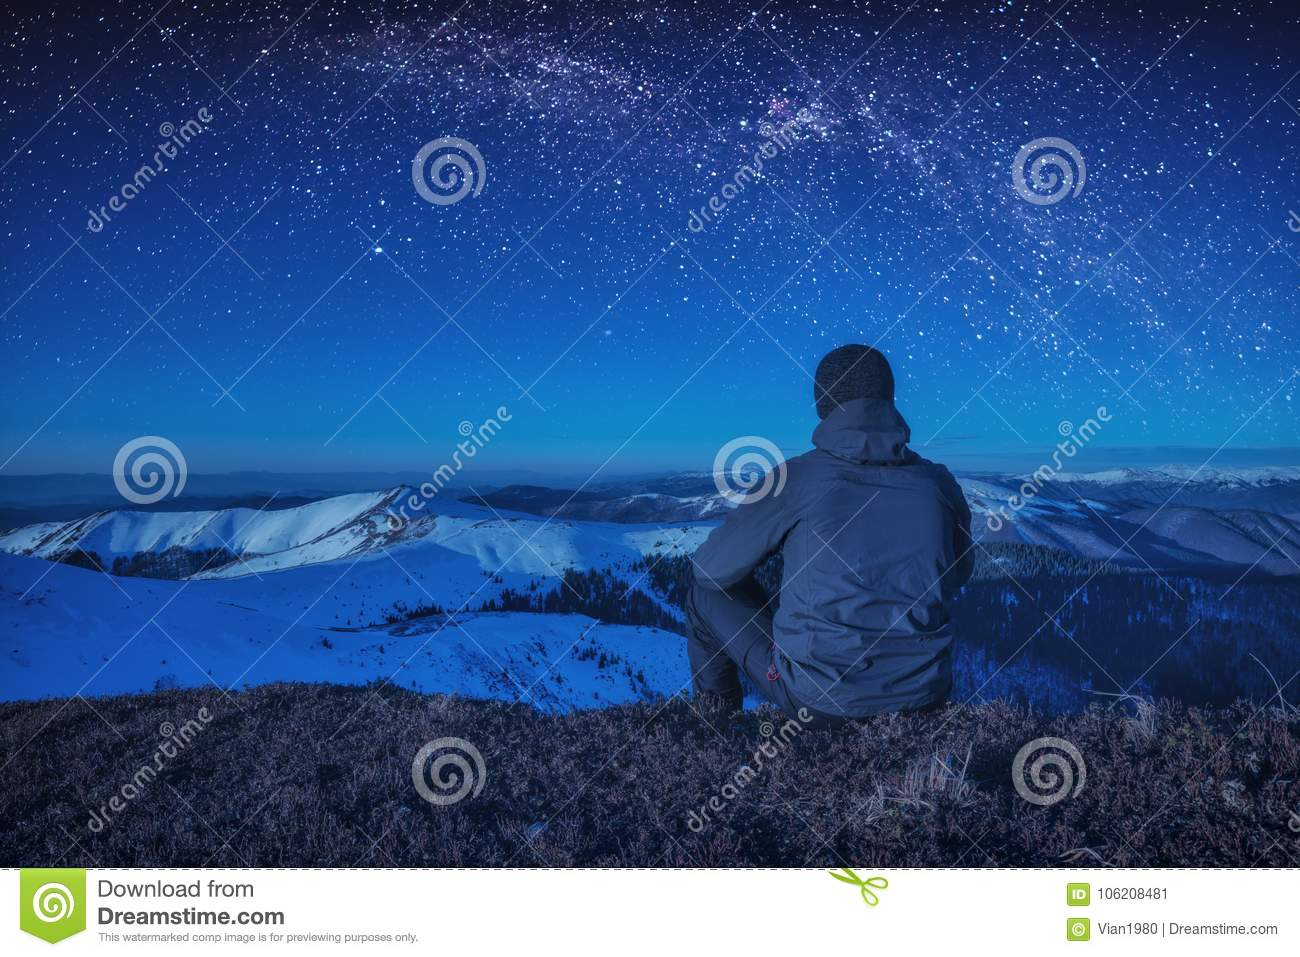 Download A Climber Sitting On A Ground At Night Stock Image - Image of climbing, nature: 106208481